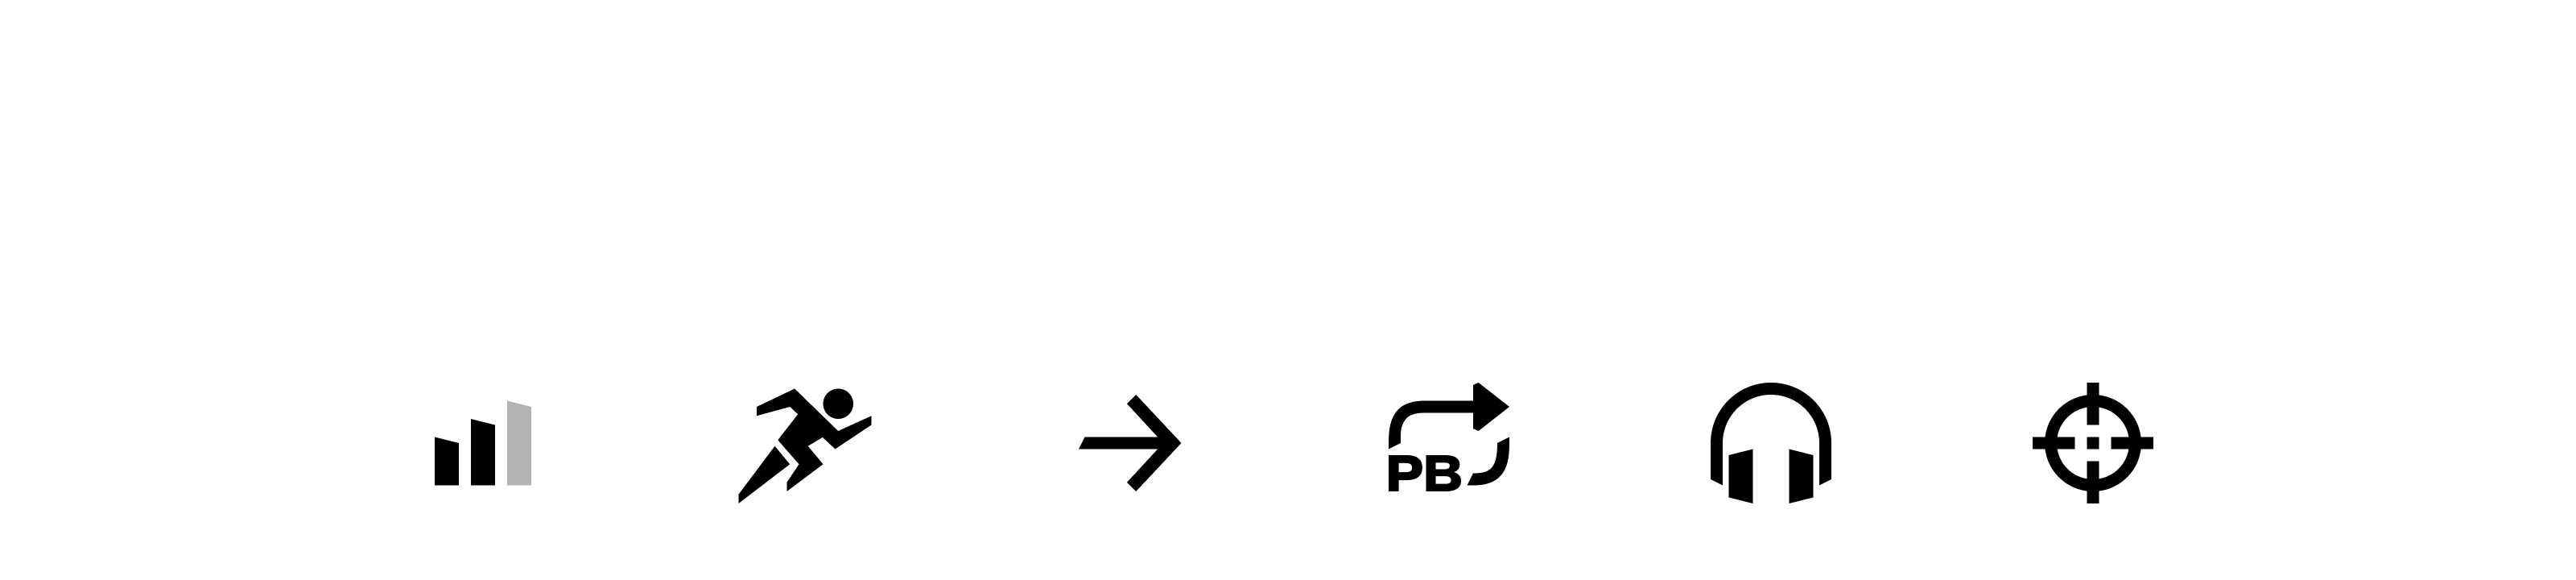 Grid of 16 black and white fitness icons